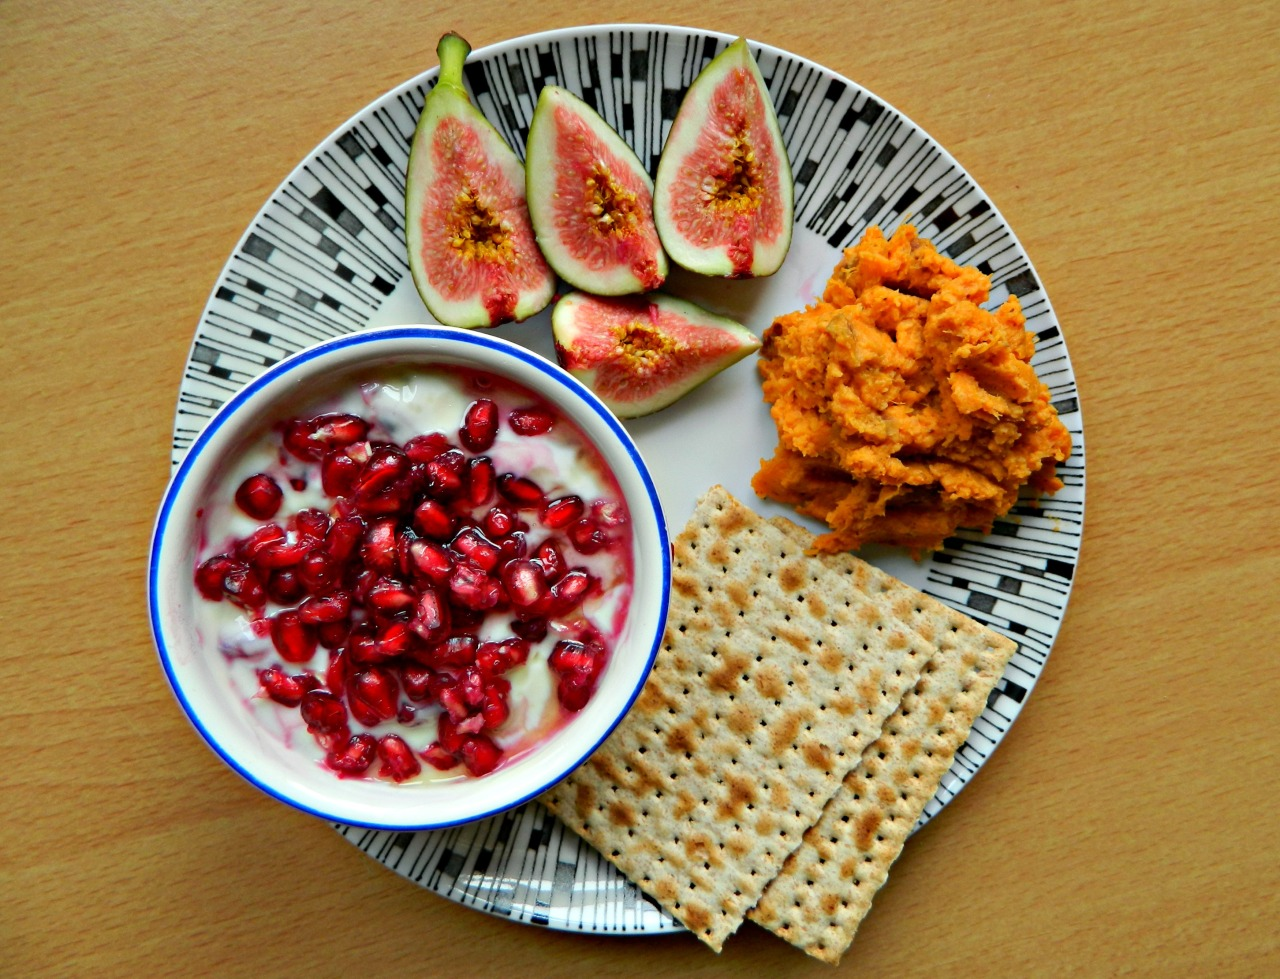 Soy yoghurt with half a pomegranate, sweet potato and almond butter mash, a fig and some spelt crackers. If you haven't tried this already - do it. Mash sweet potato (skins on) with some almond butter, maple syrup, almond milk and a bit of dairy free butter/spread. It will change your life. Probably.